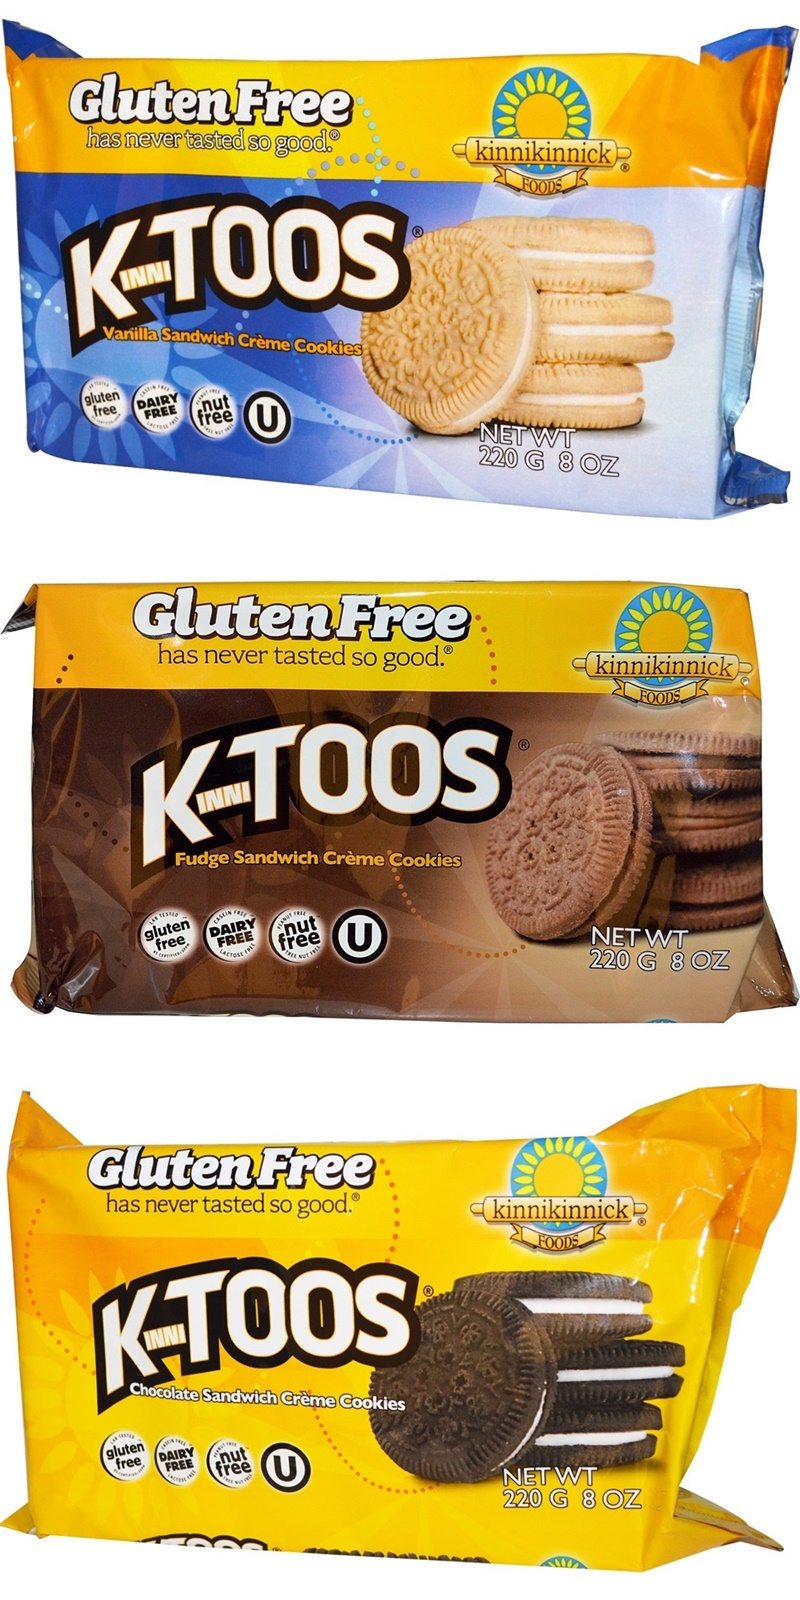 KinniToos Sandwich Creme Cookies (Review) - Gluten-free, Dairy-free, Nut-free, Vegan (3 flavors!)